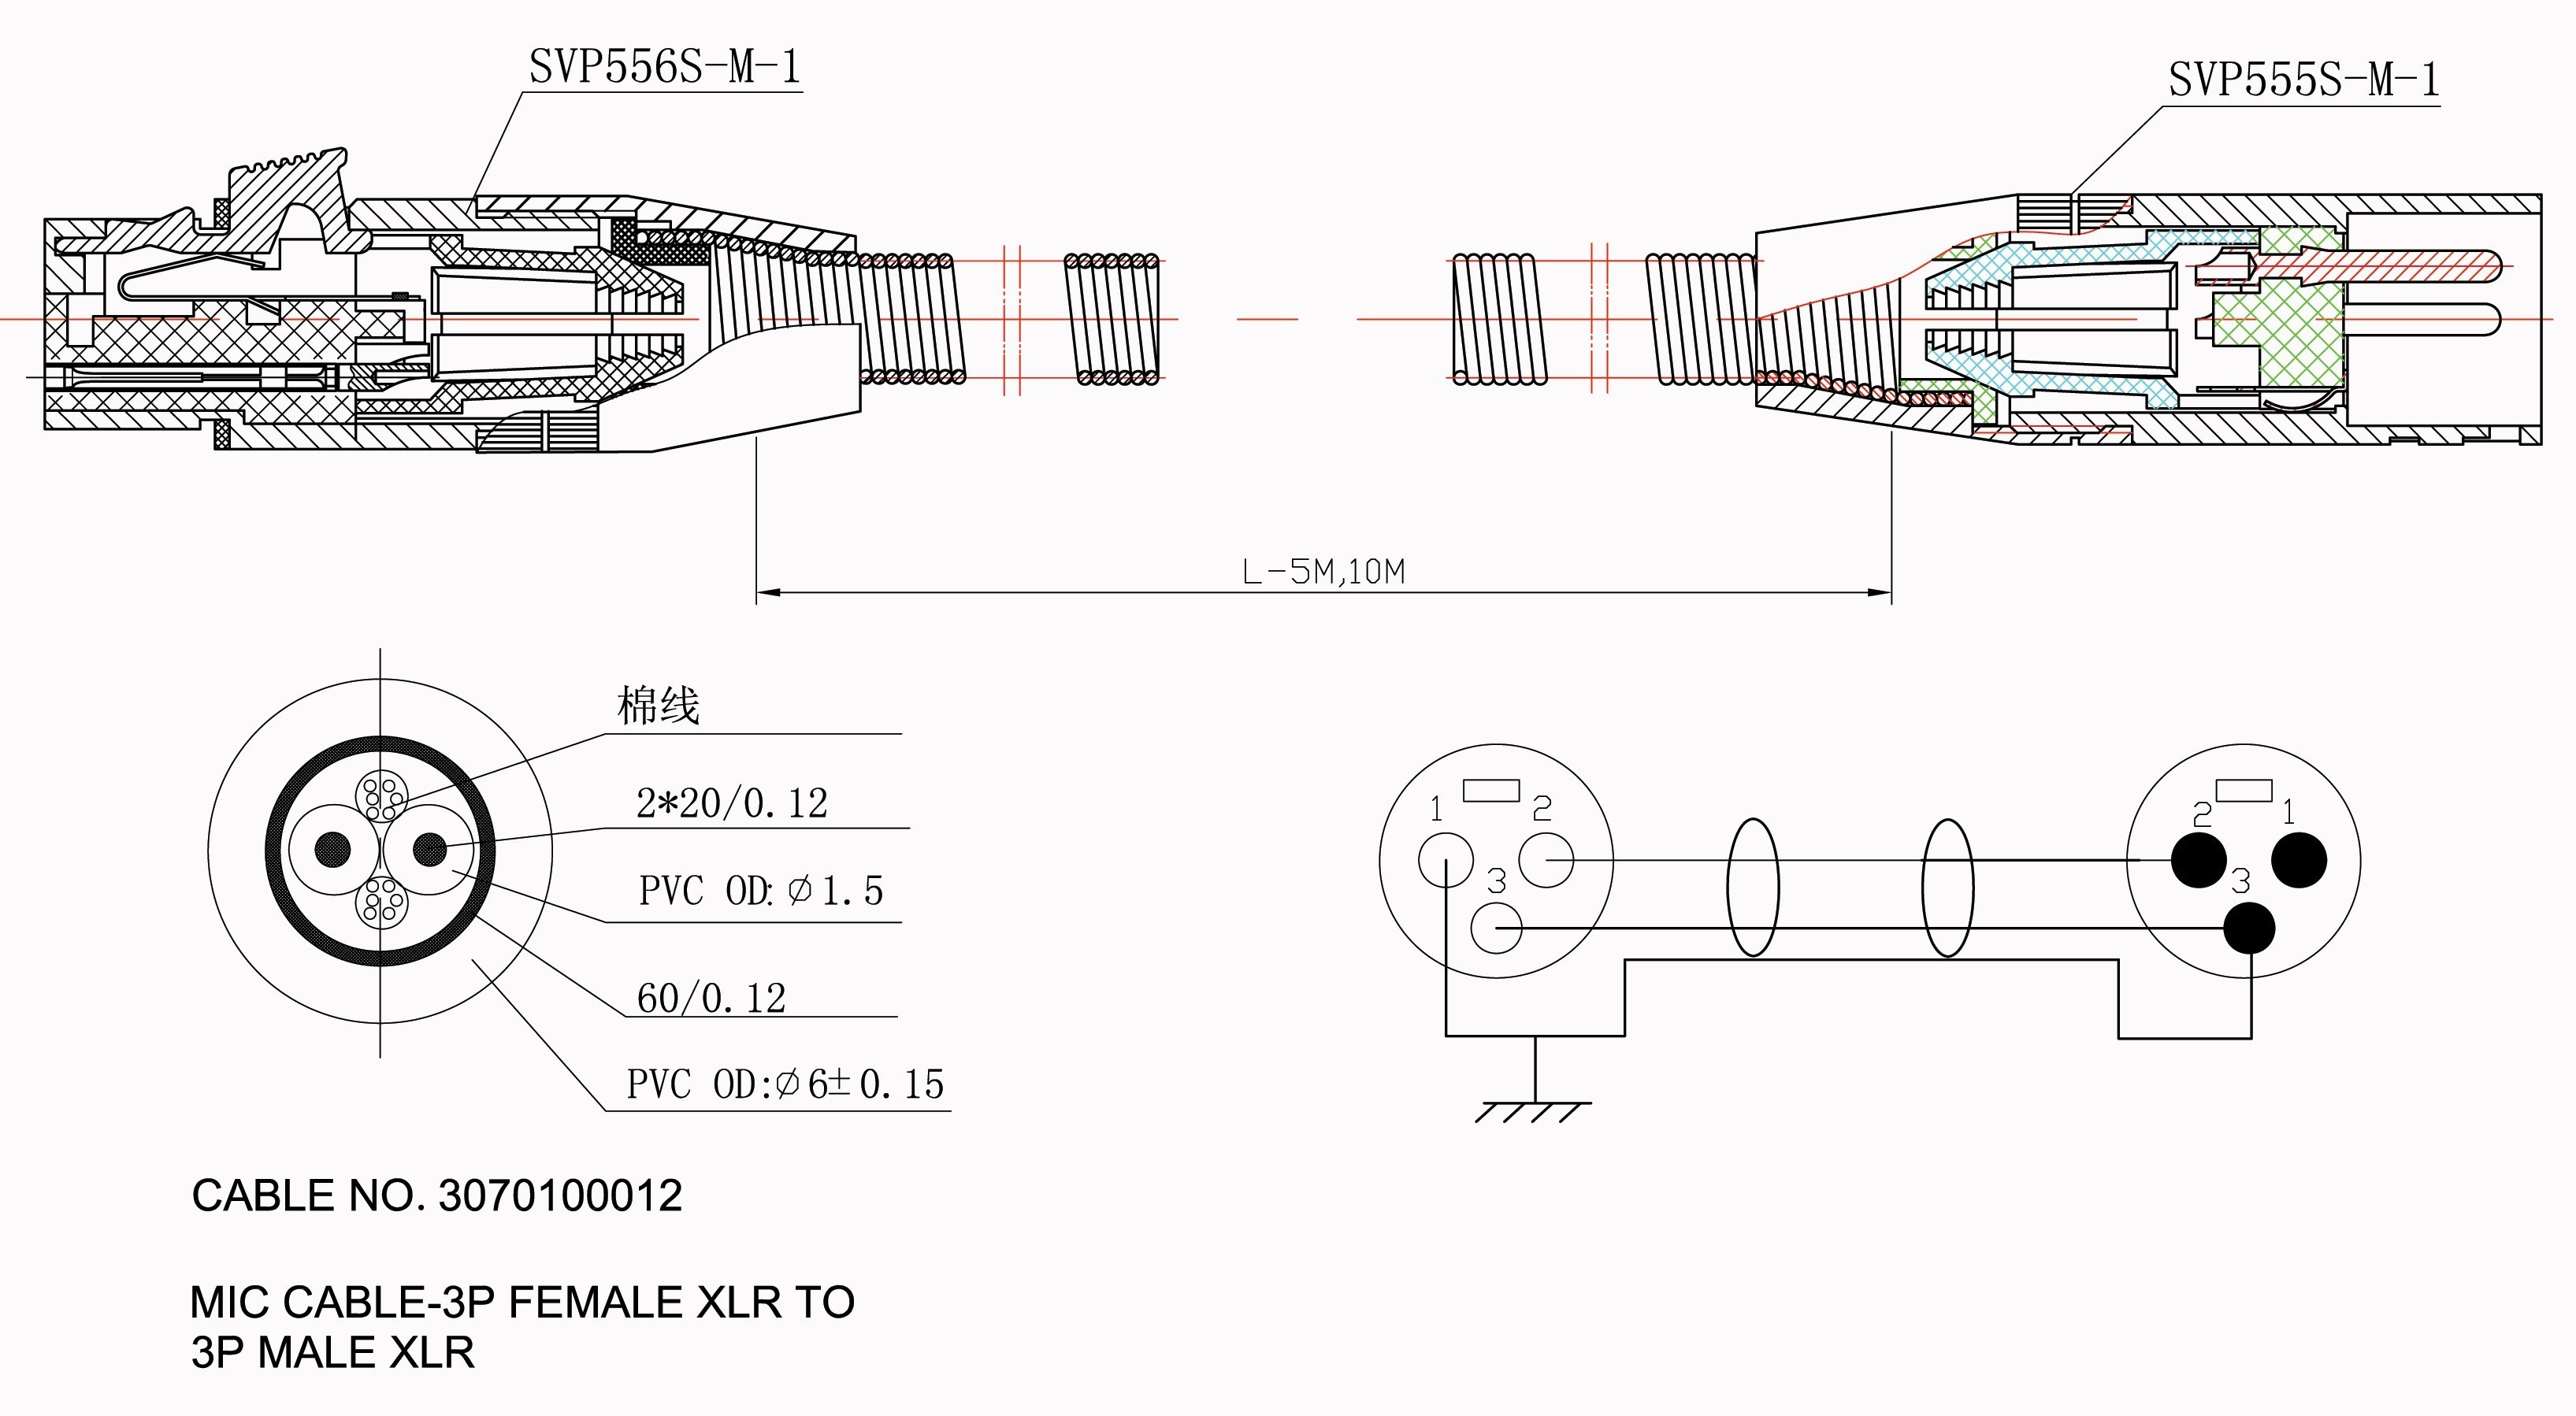 Wiring Diagram For Cat5 Cable Price Fresh Outstanding Cat 5 Cable Color Code Position Best For